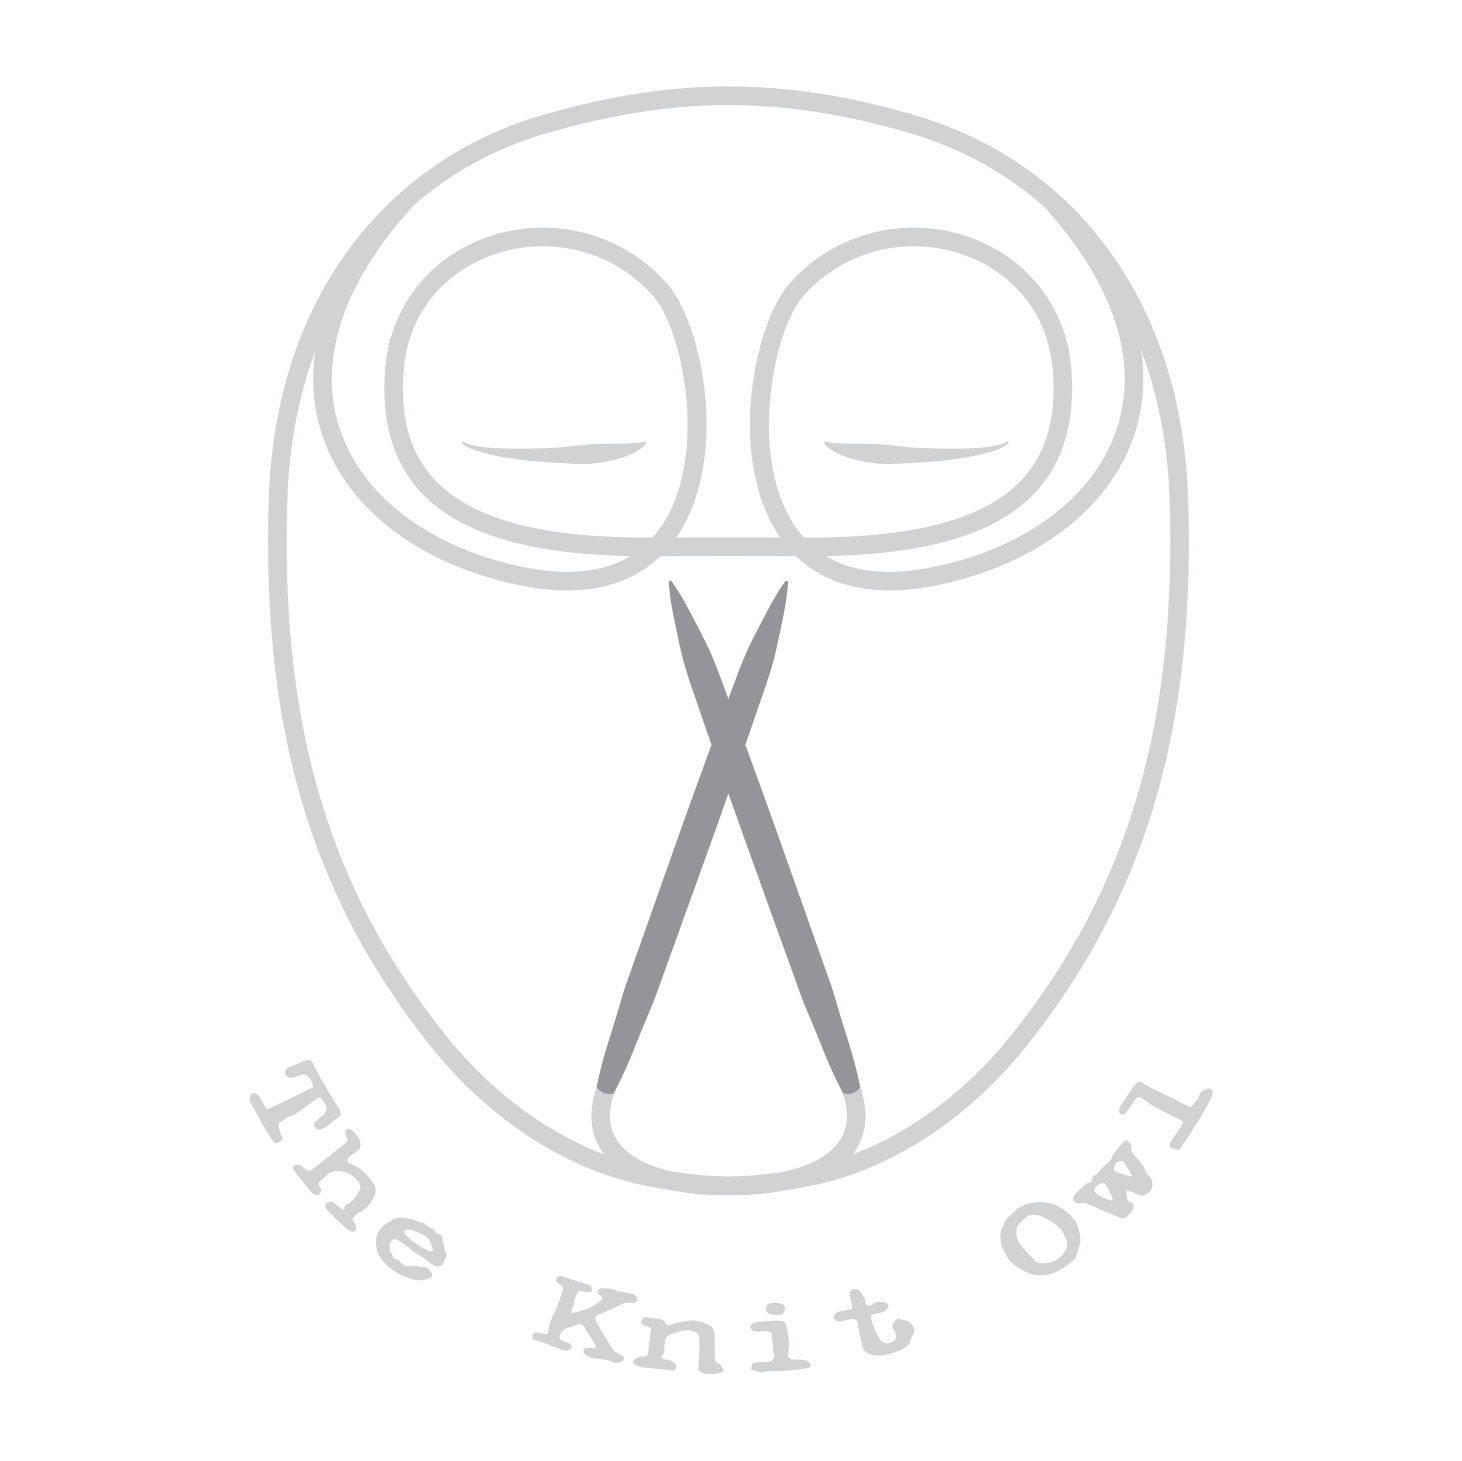 The Knit Owl